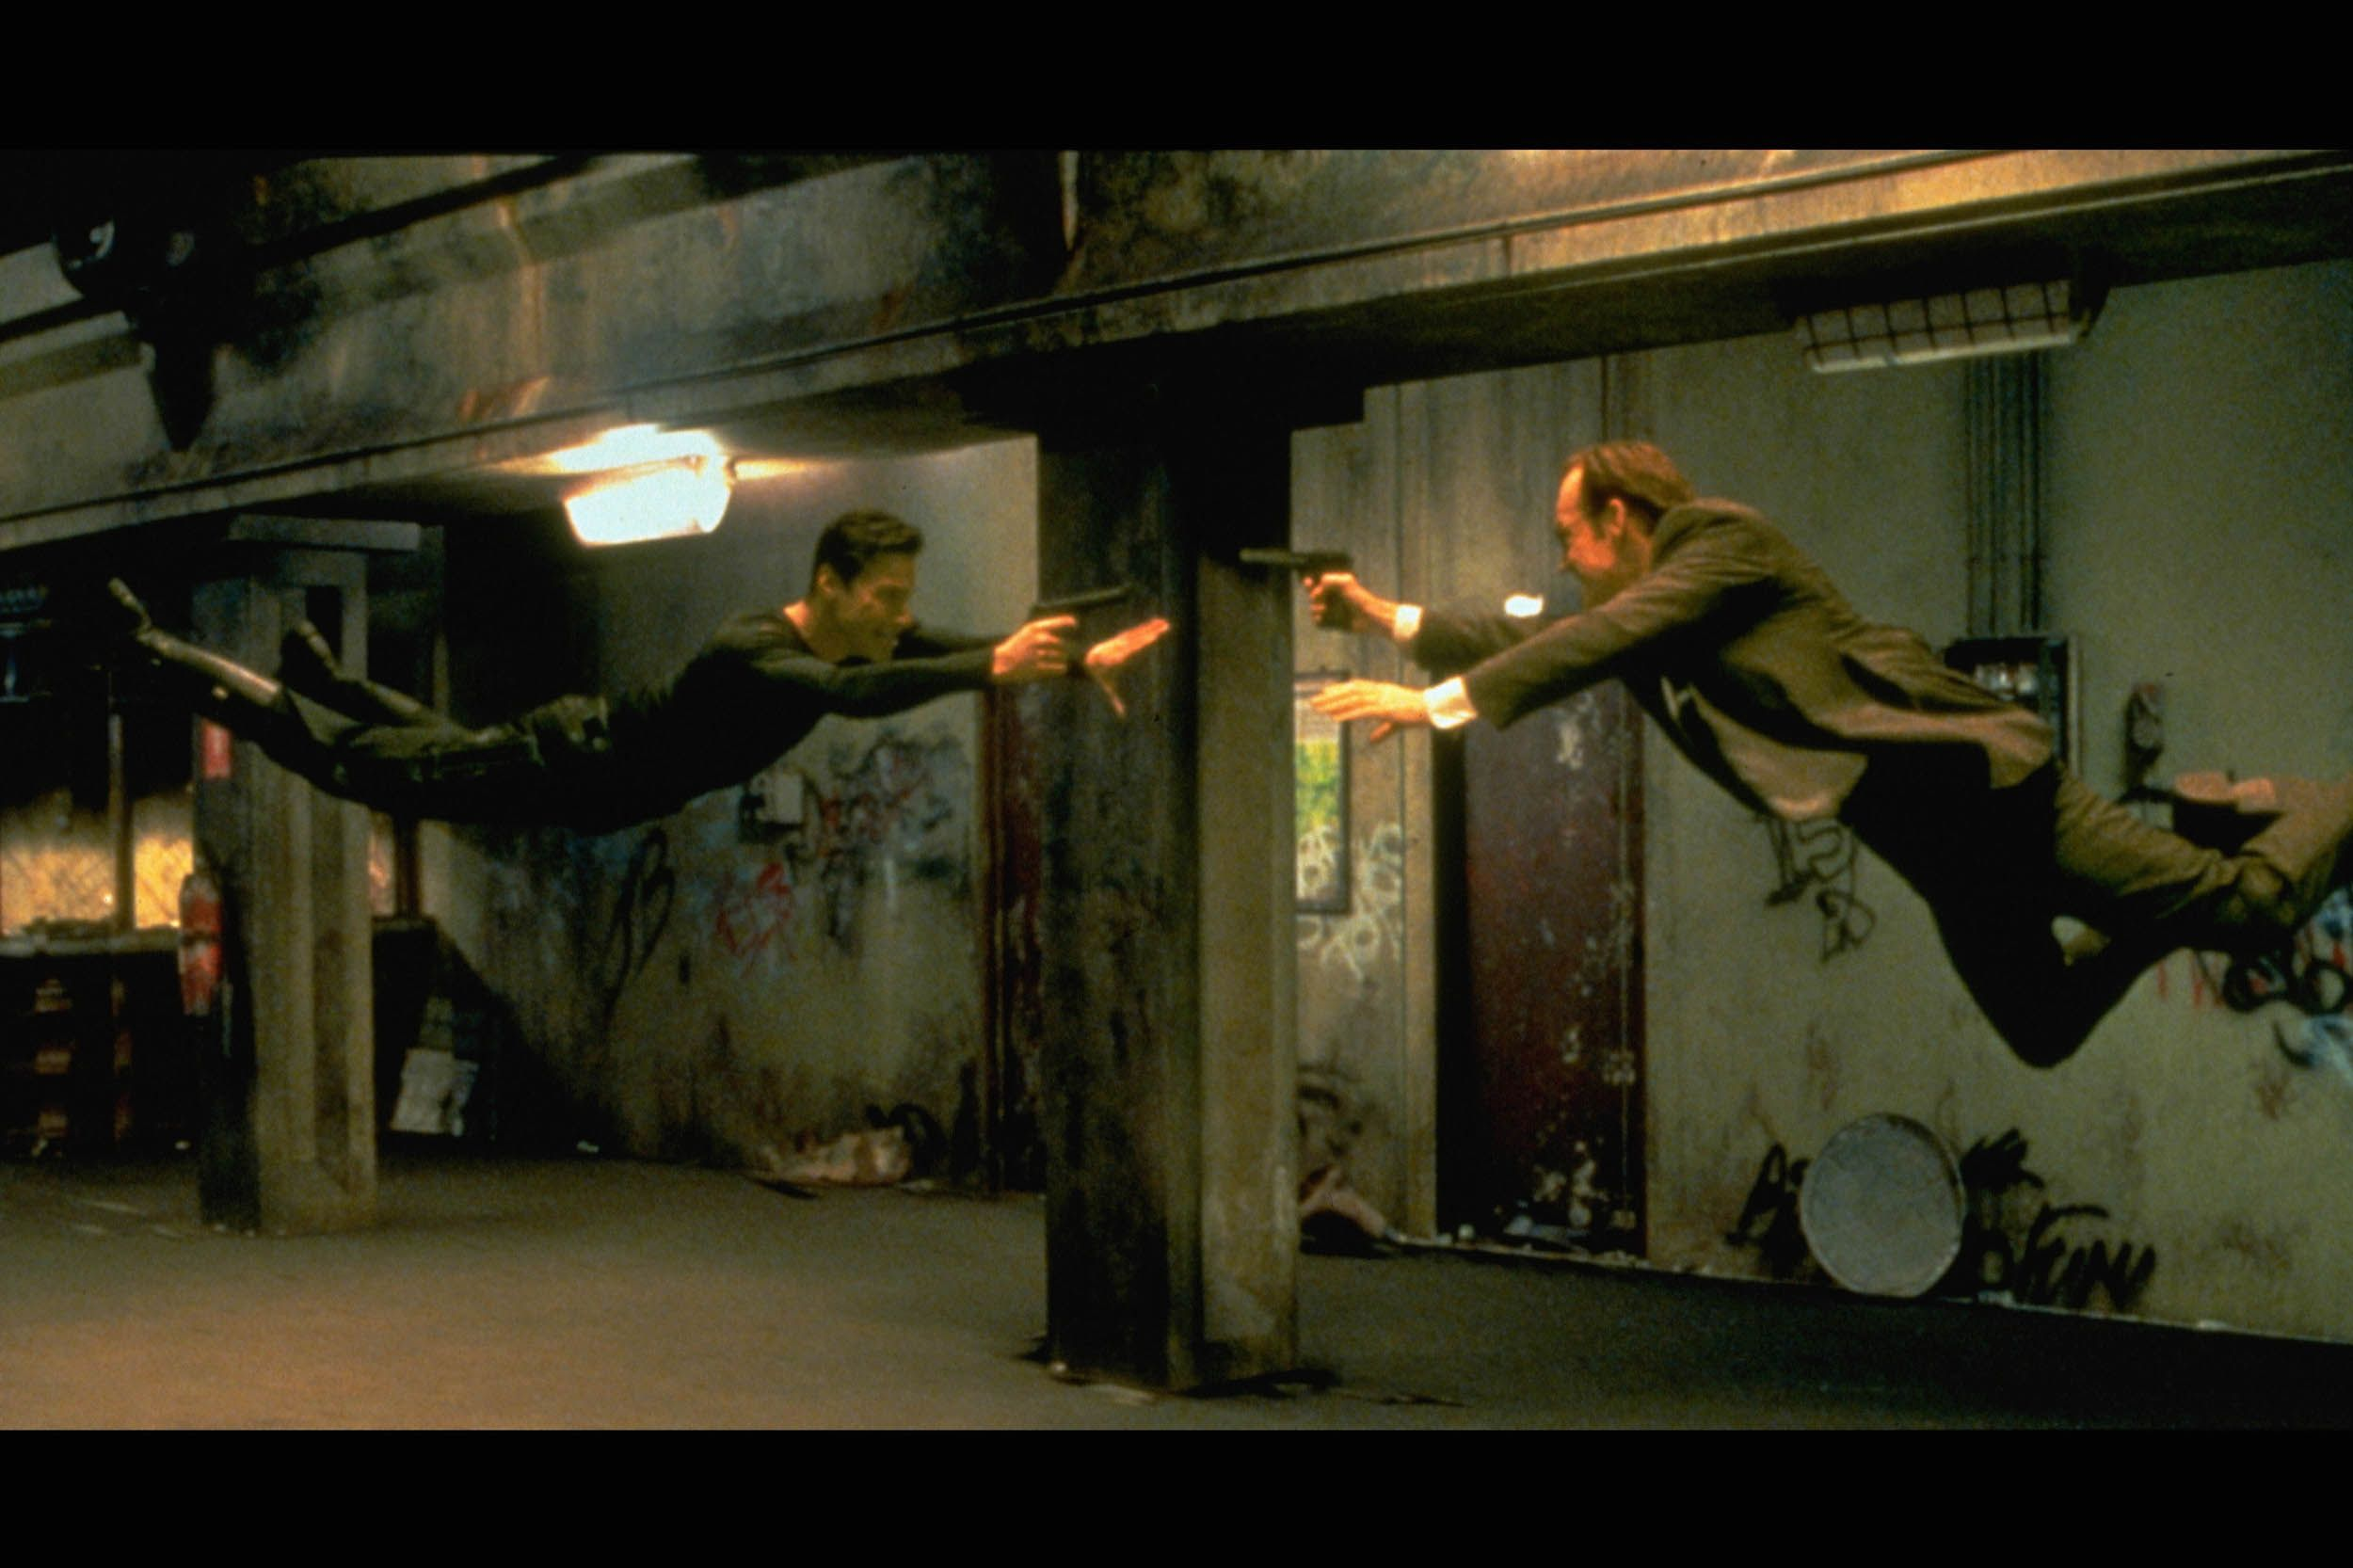 Keanu Reeves and Hugo Weaving in the 1999 film The Matrix.